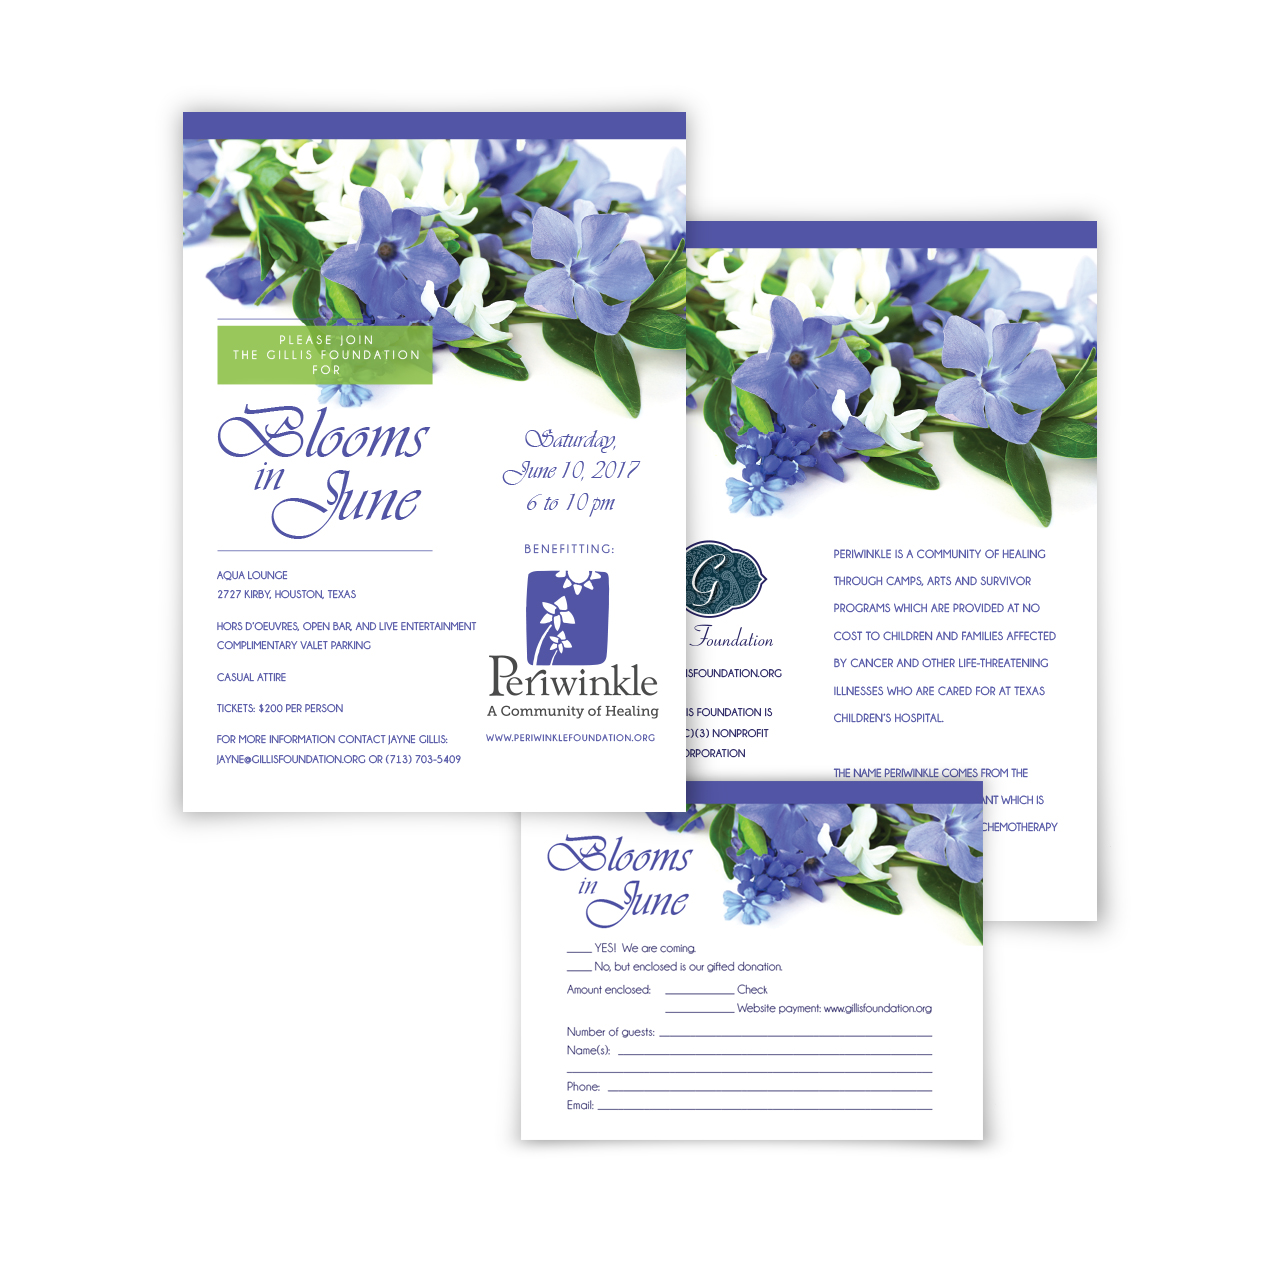 Blooms in June invitation collection